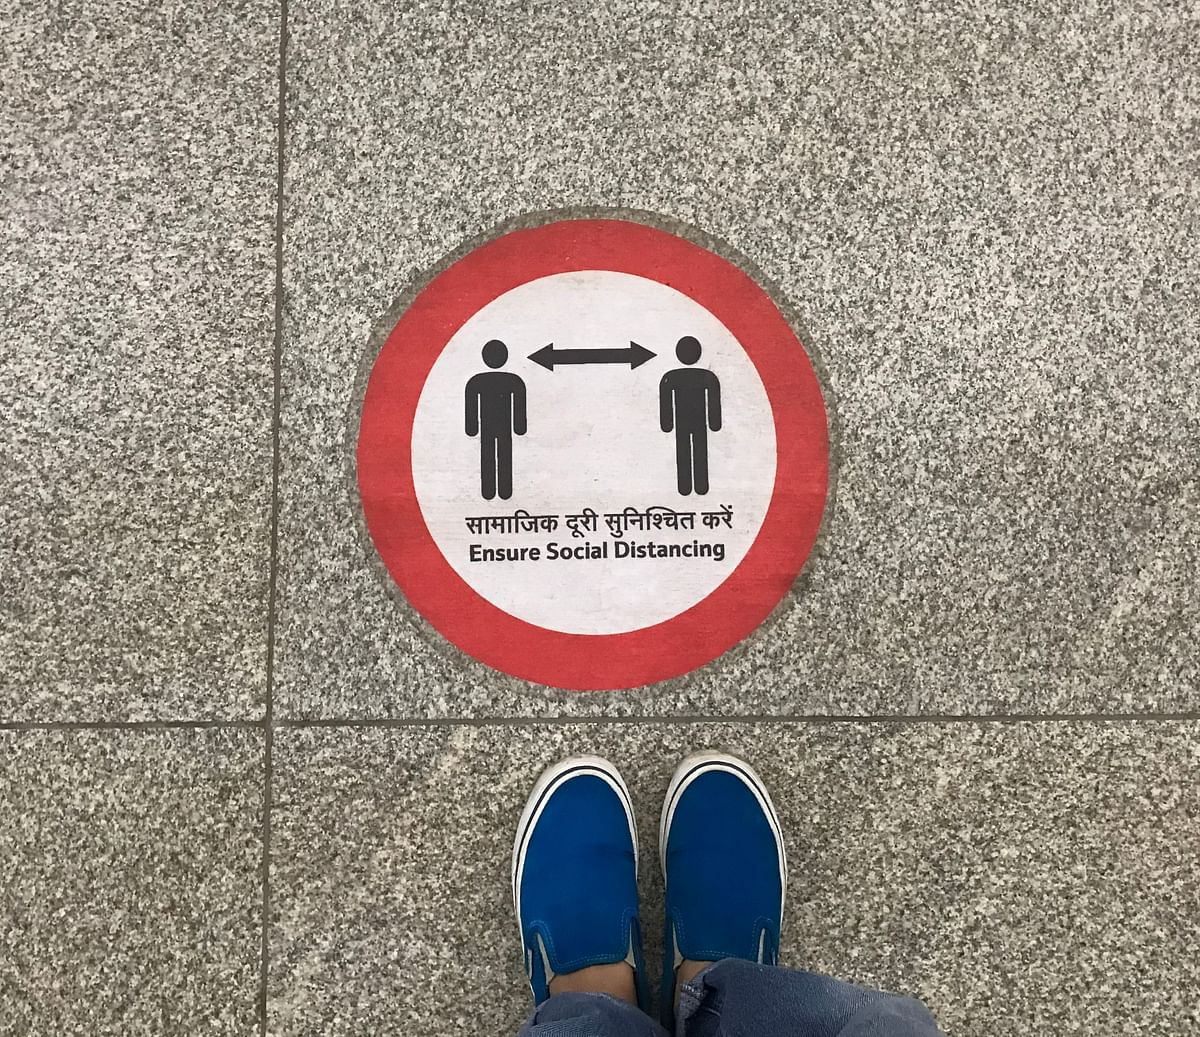 Social distancing signage at the metro stations.